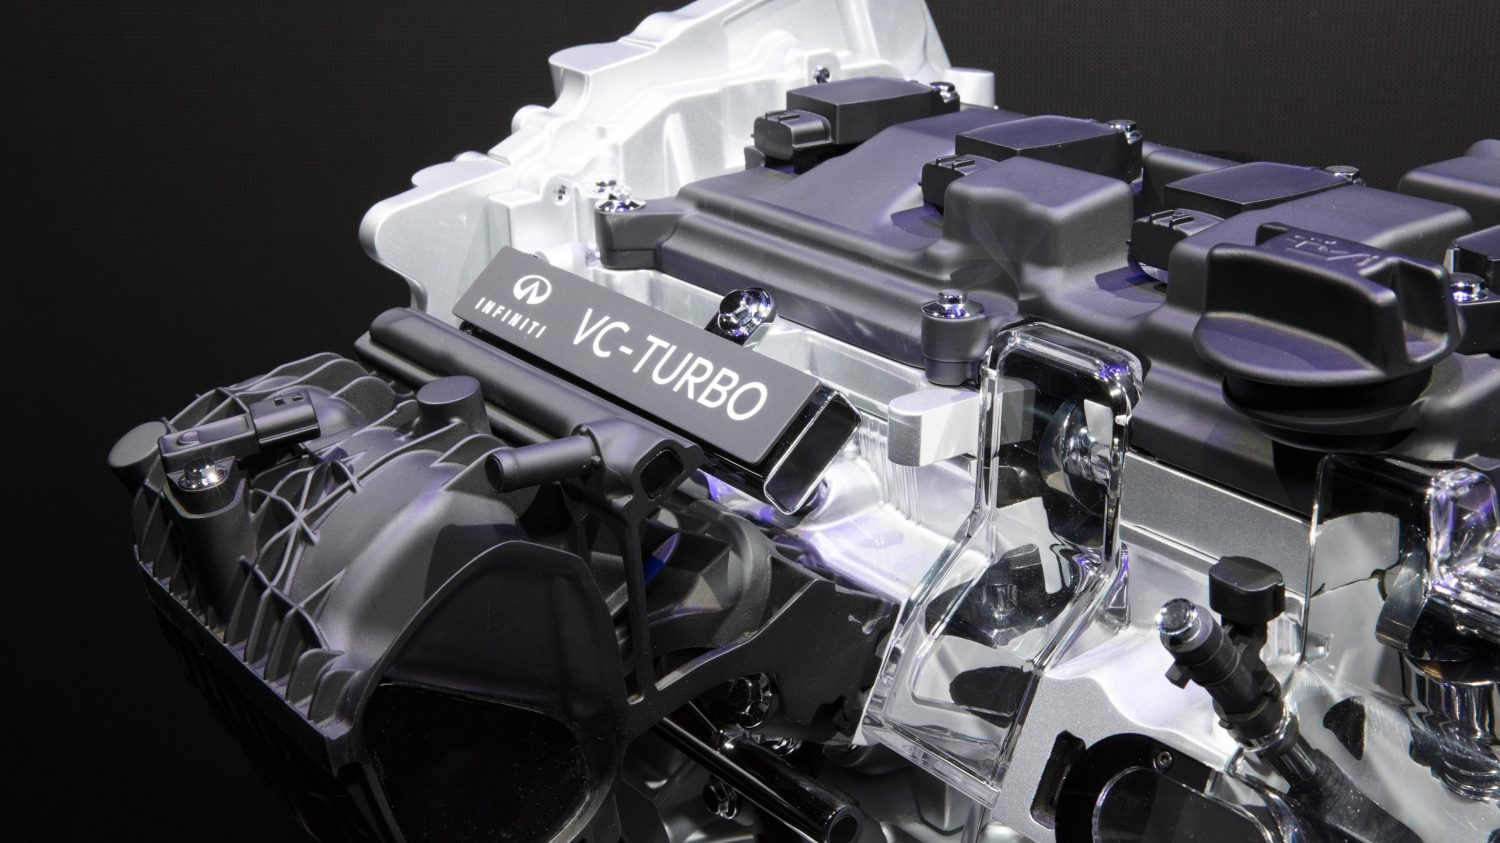 infiniti vc turbo engine launched at paris motor show